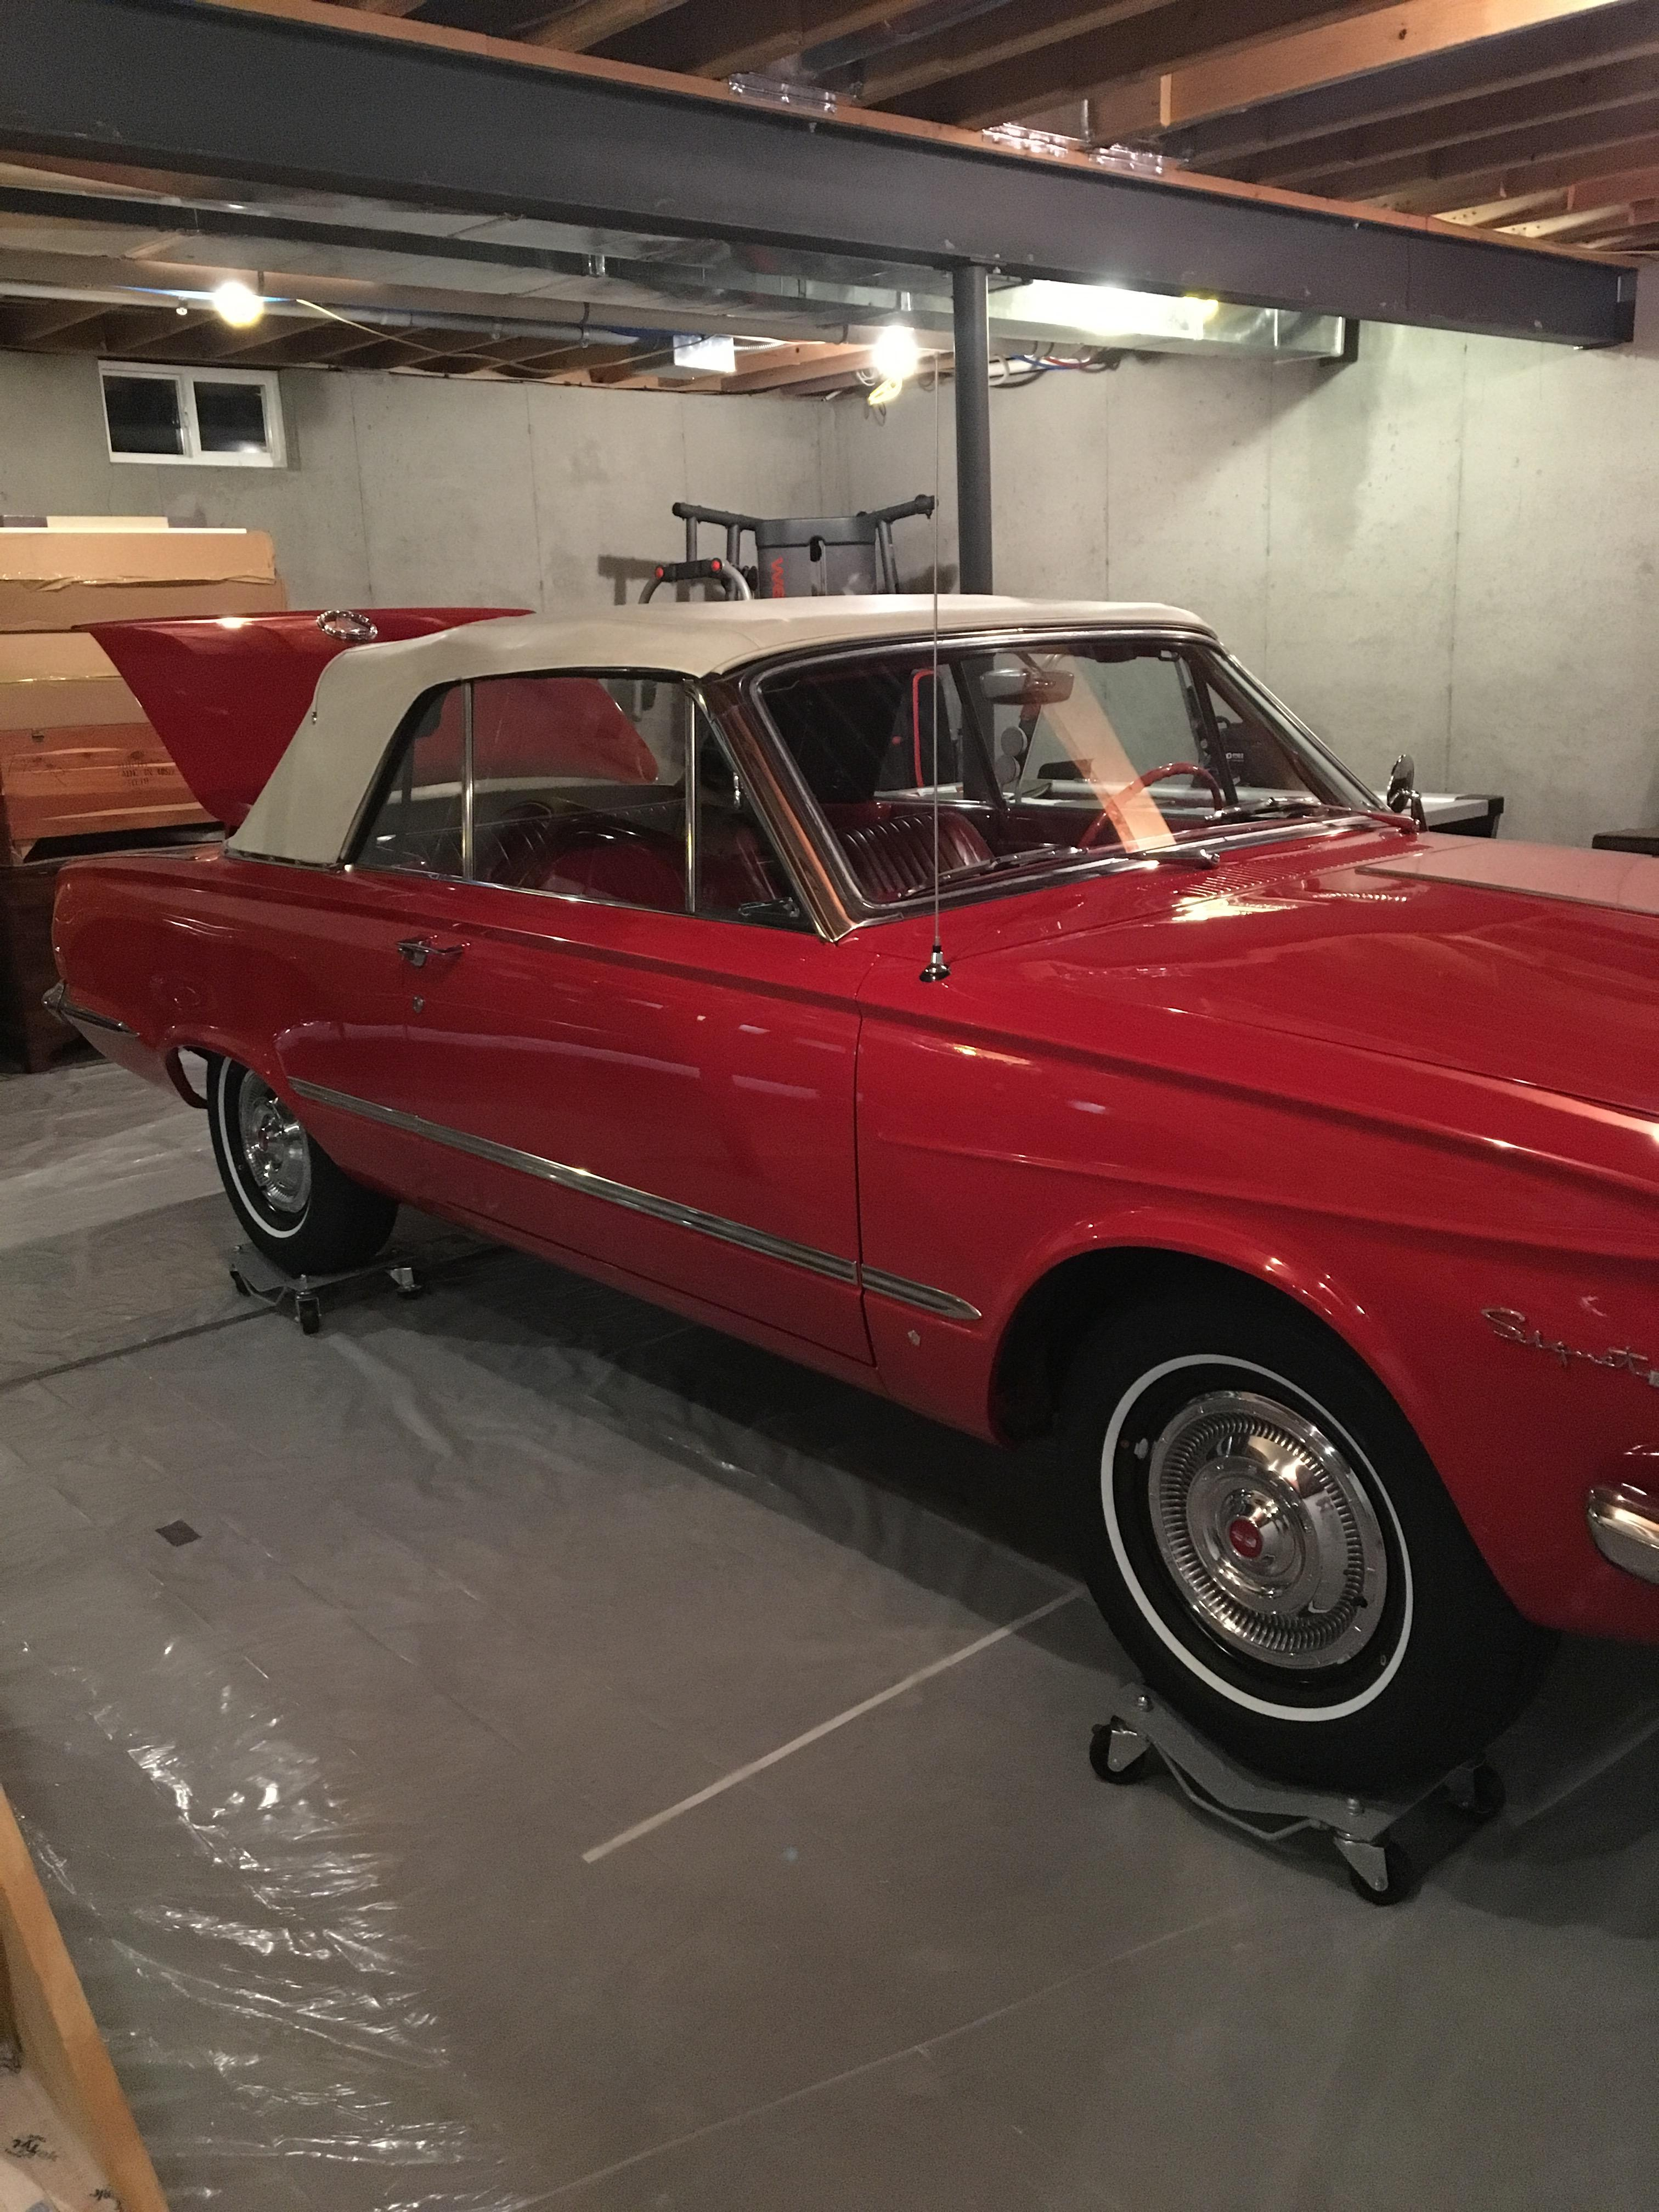 1964 Plymouth Valiant signet 200 convertible   Cars For Sale     Very nice Plymouth with its original top and original interior very nice  running car  Always garage kept  Super clean car  If you have any questions  please